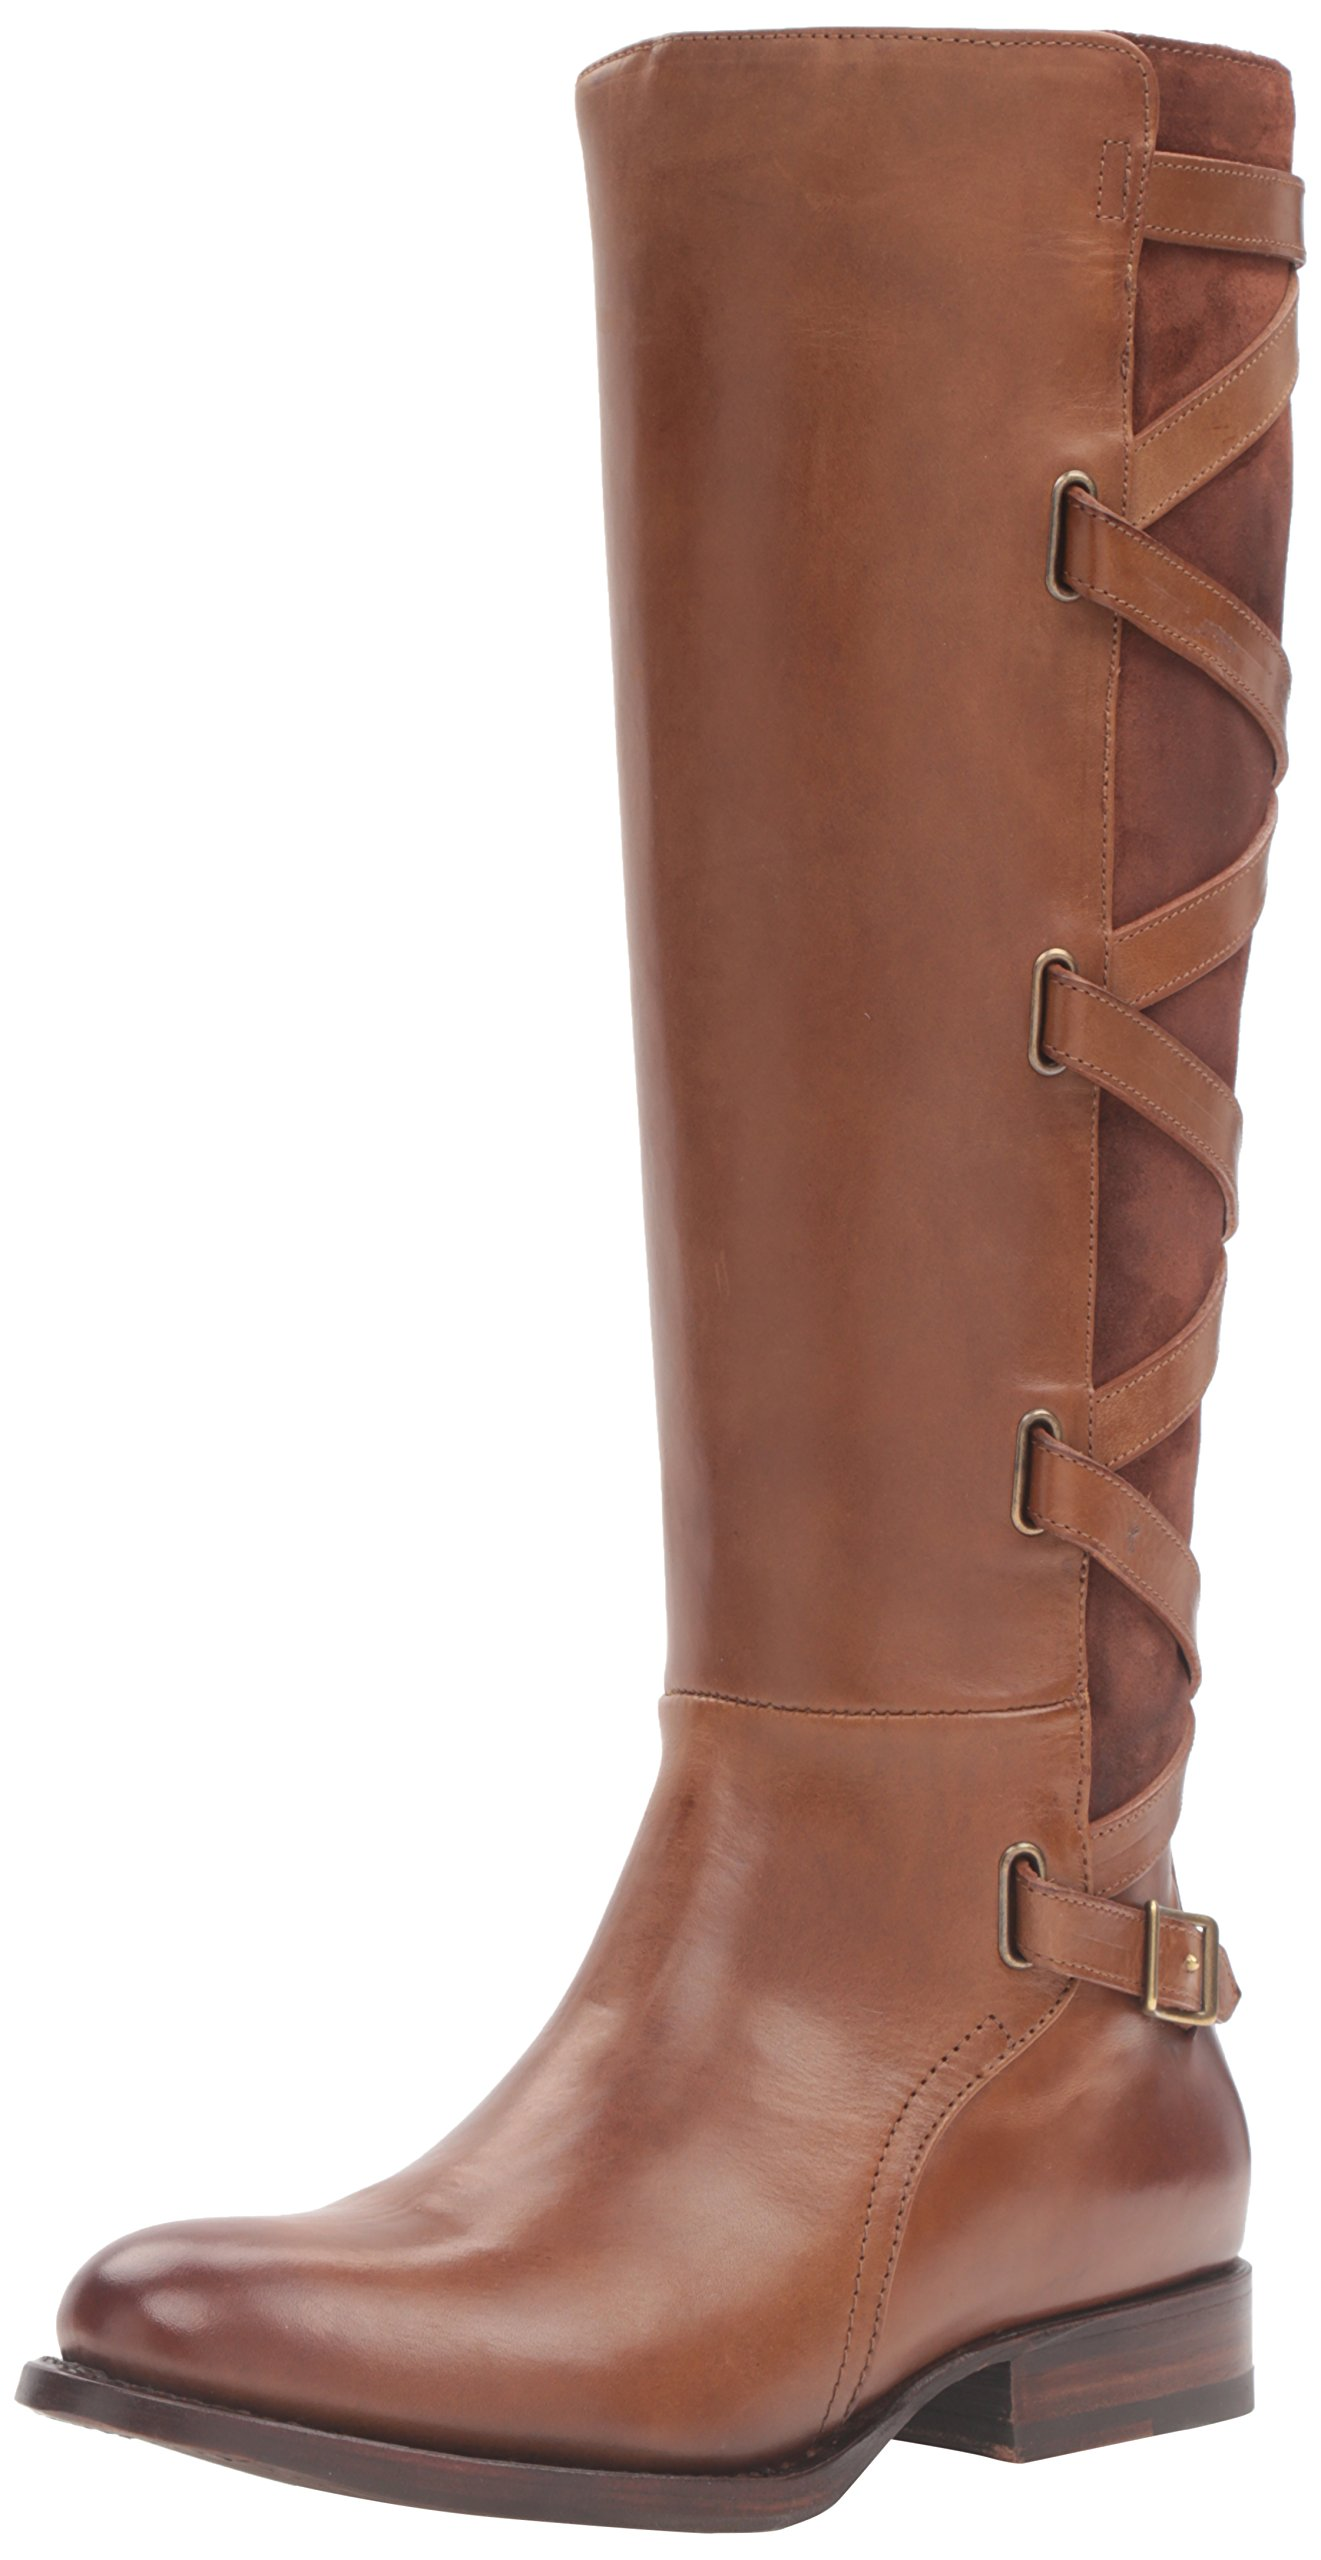 FRYE Women's Jordan Strappy Tall Riding Boot, Wood, 6.5 M US